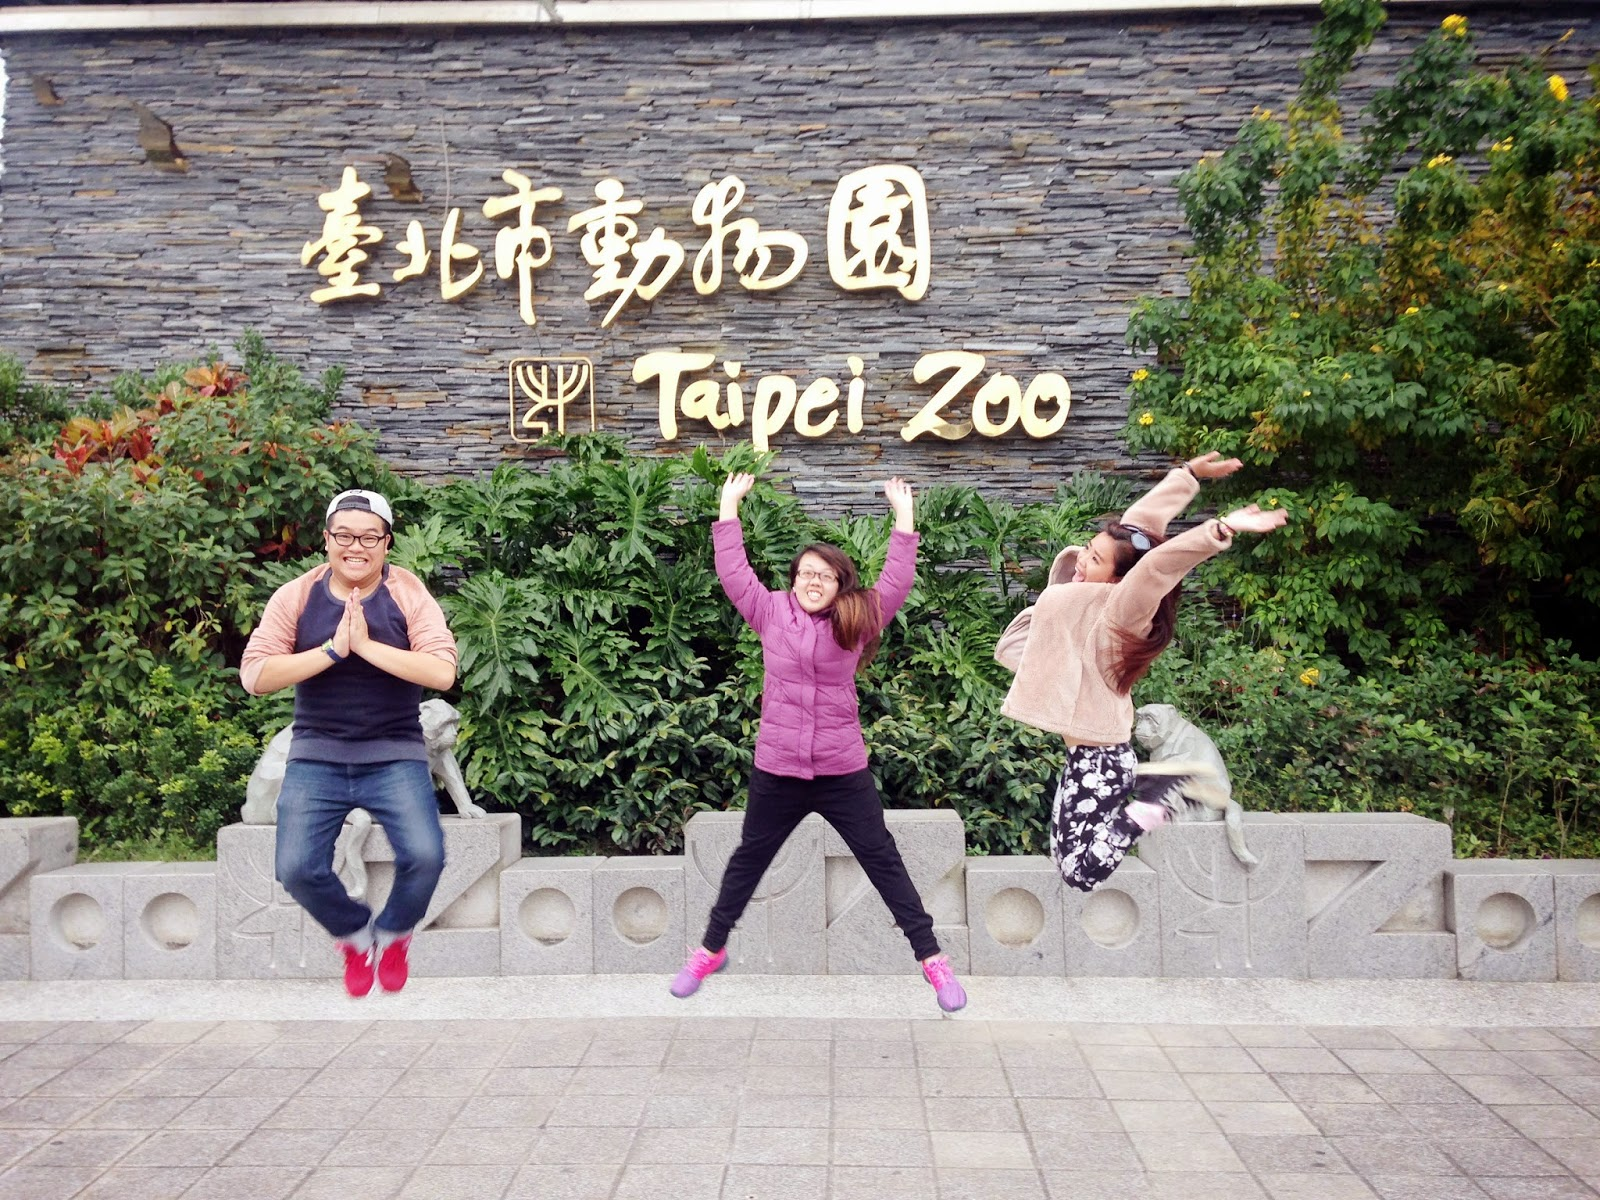 Taipei Zoo Picture: Taiwan blog.